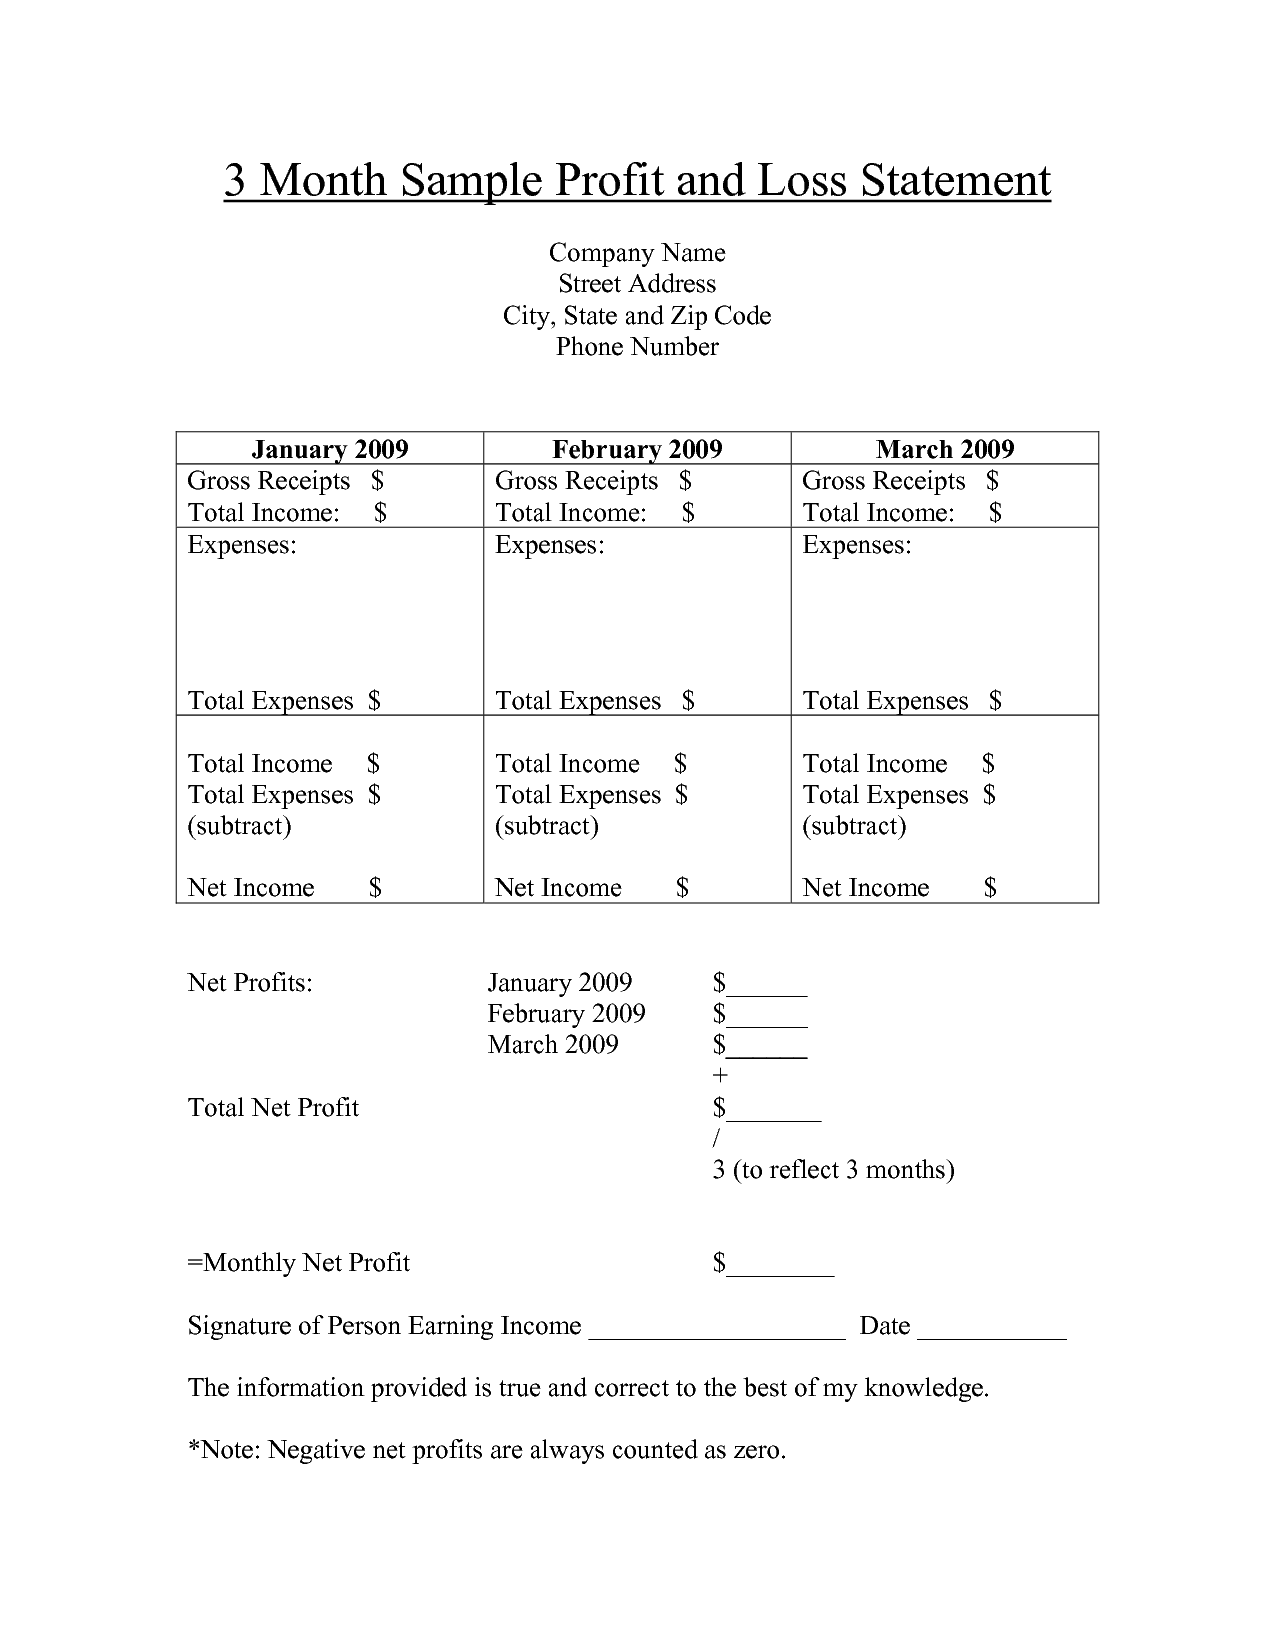 Profit and Loss Statement Template – Quarterly Profit and Loss Statement Template